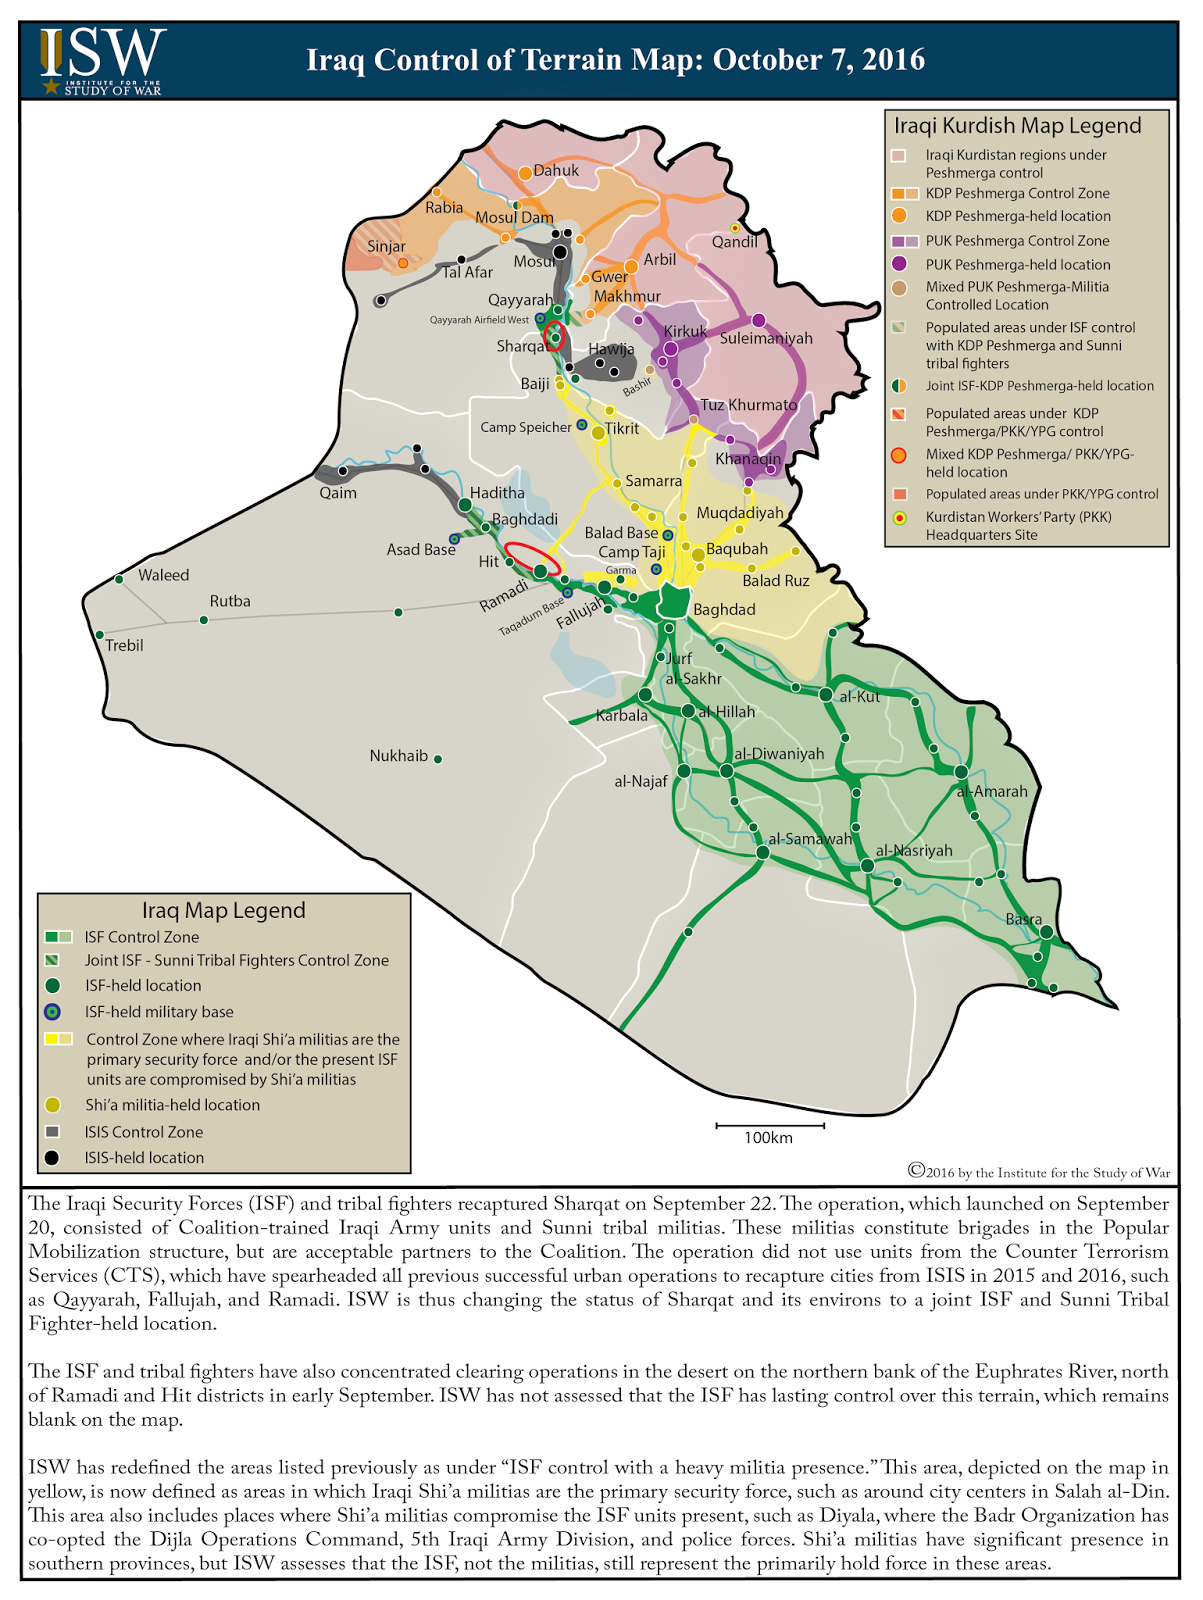 iraqi army division and police forces shia militias have significant presence in southern provinces but isw assesses that the isf not the militias